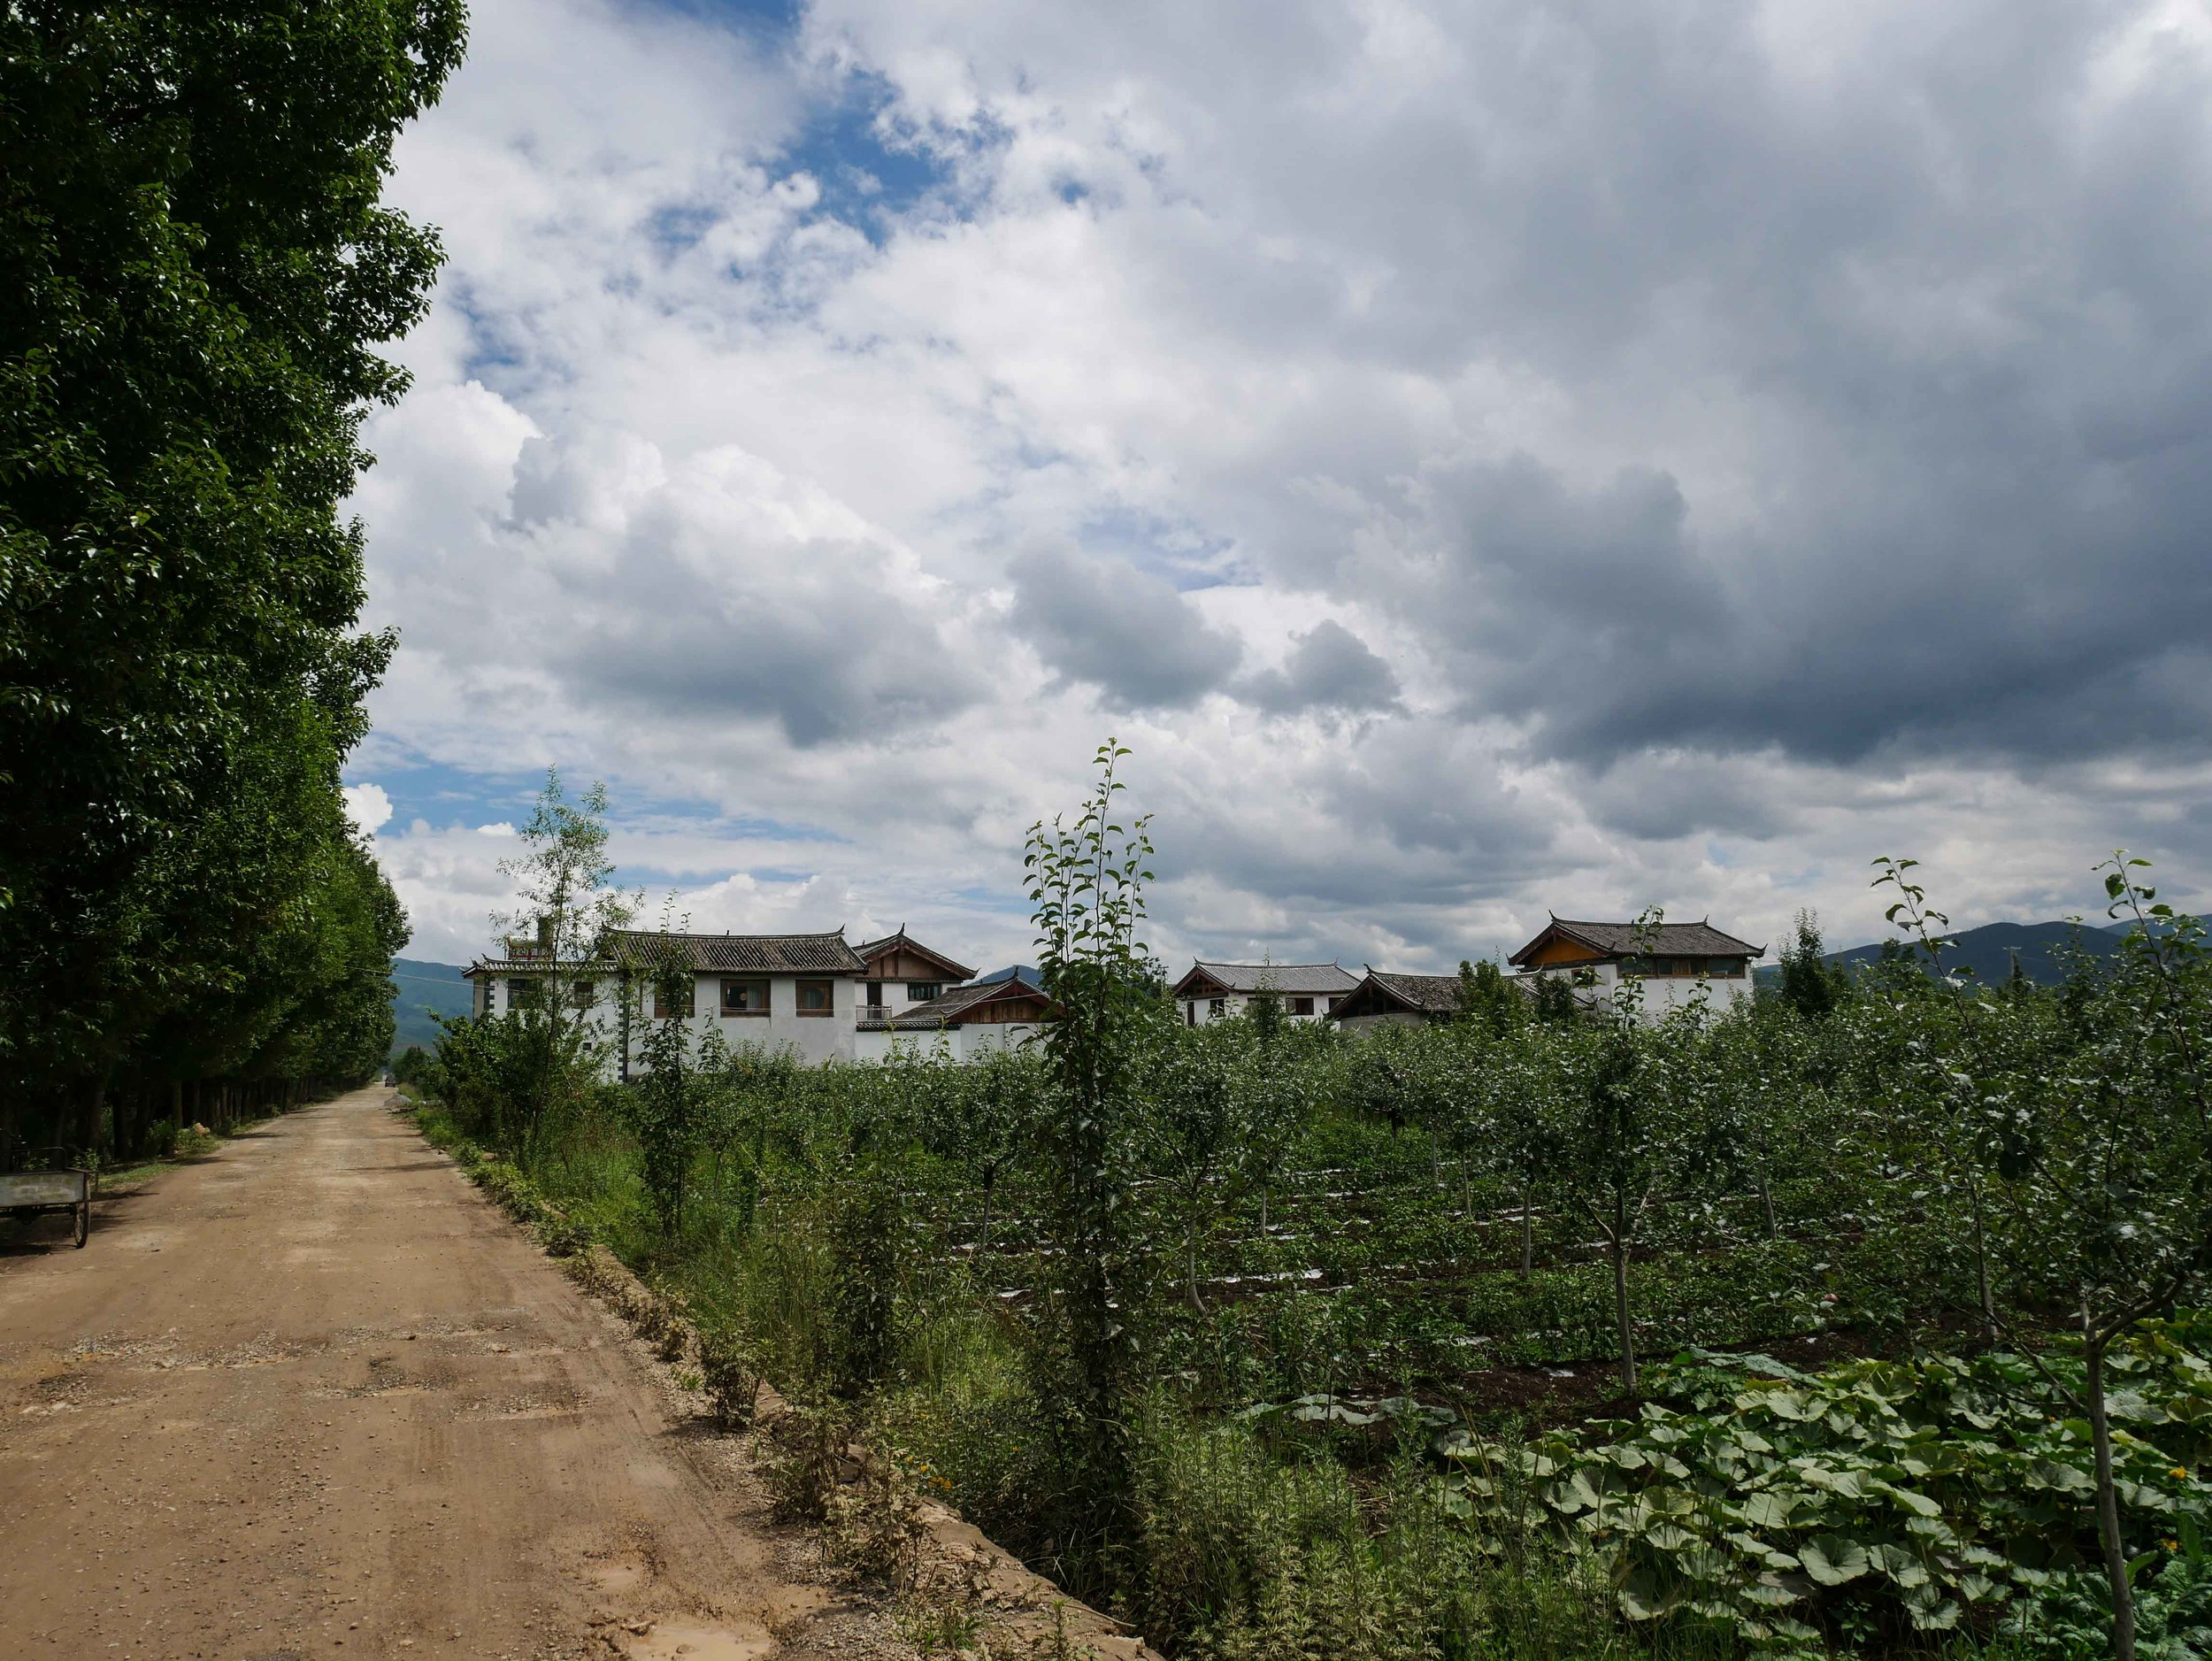 I have just landed in the countryside of the Yunnan province in southwest China, where I'll be in residence for a month at  Lijiang Studio  - a unique artist residency embedded in village life of an area called Lashihai.